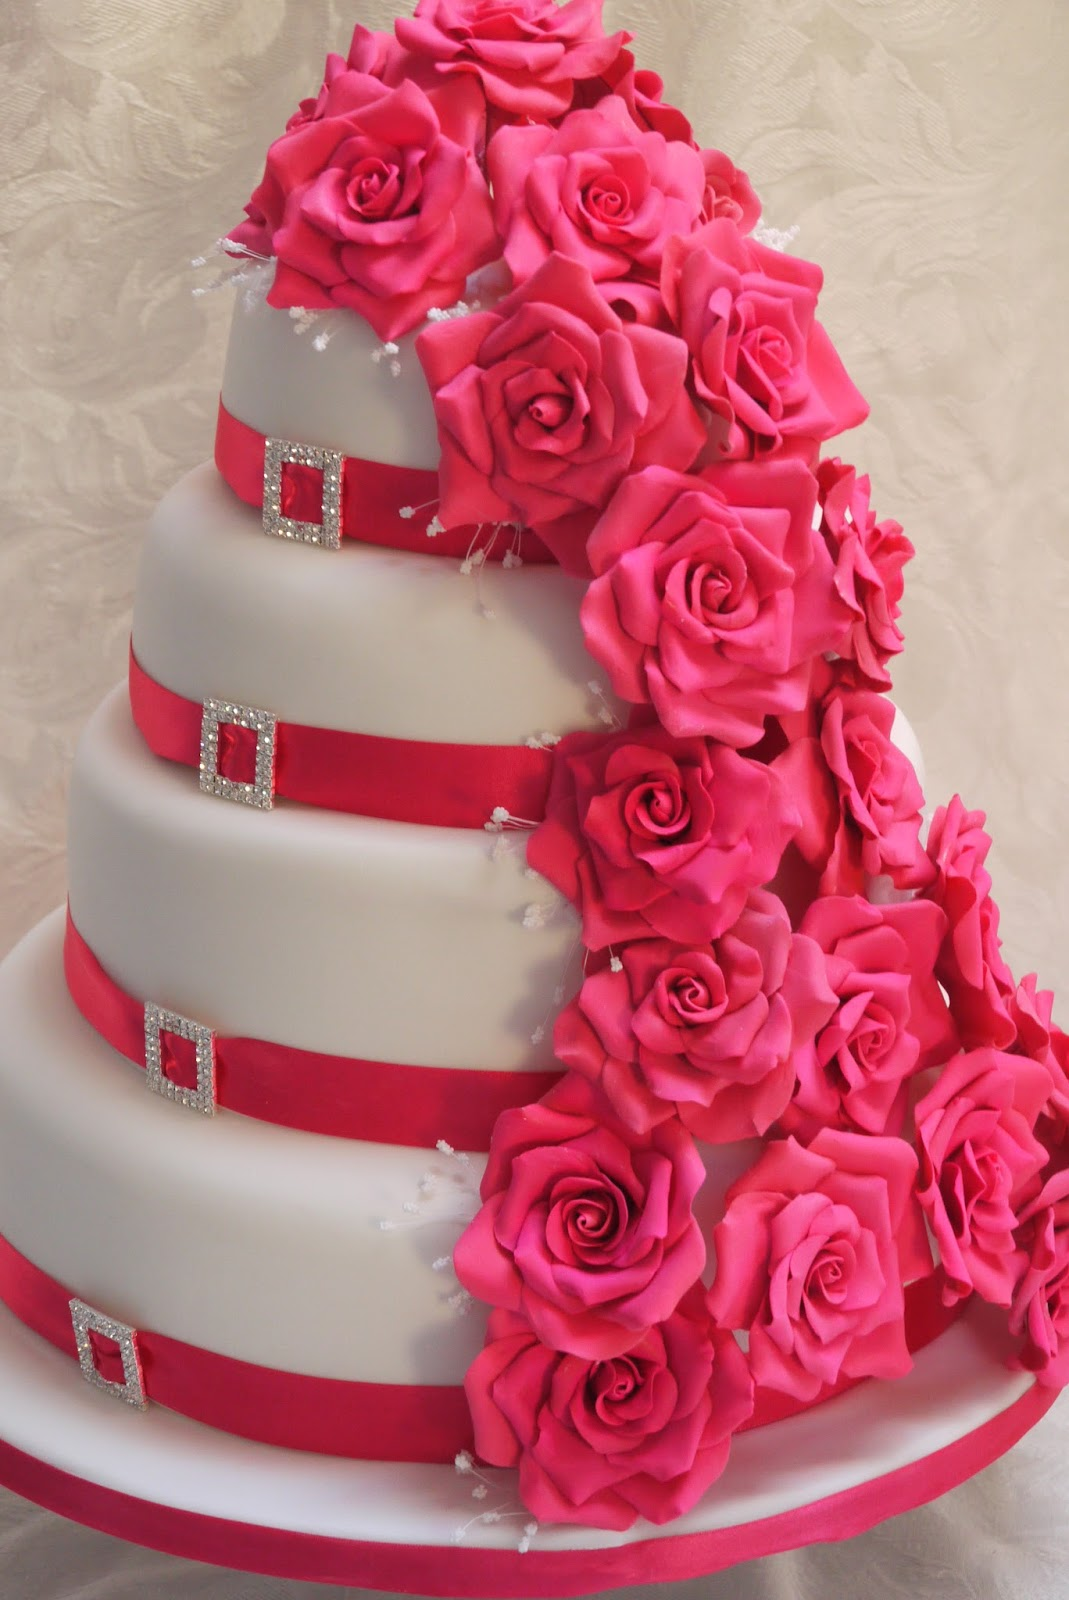 Hot Pink Cake Images : Scrummy Mummy s Cakes: Hot Pink Roses